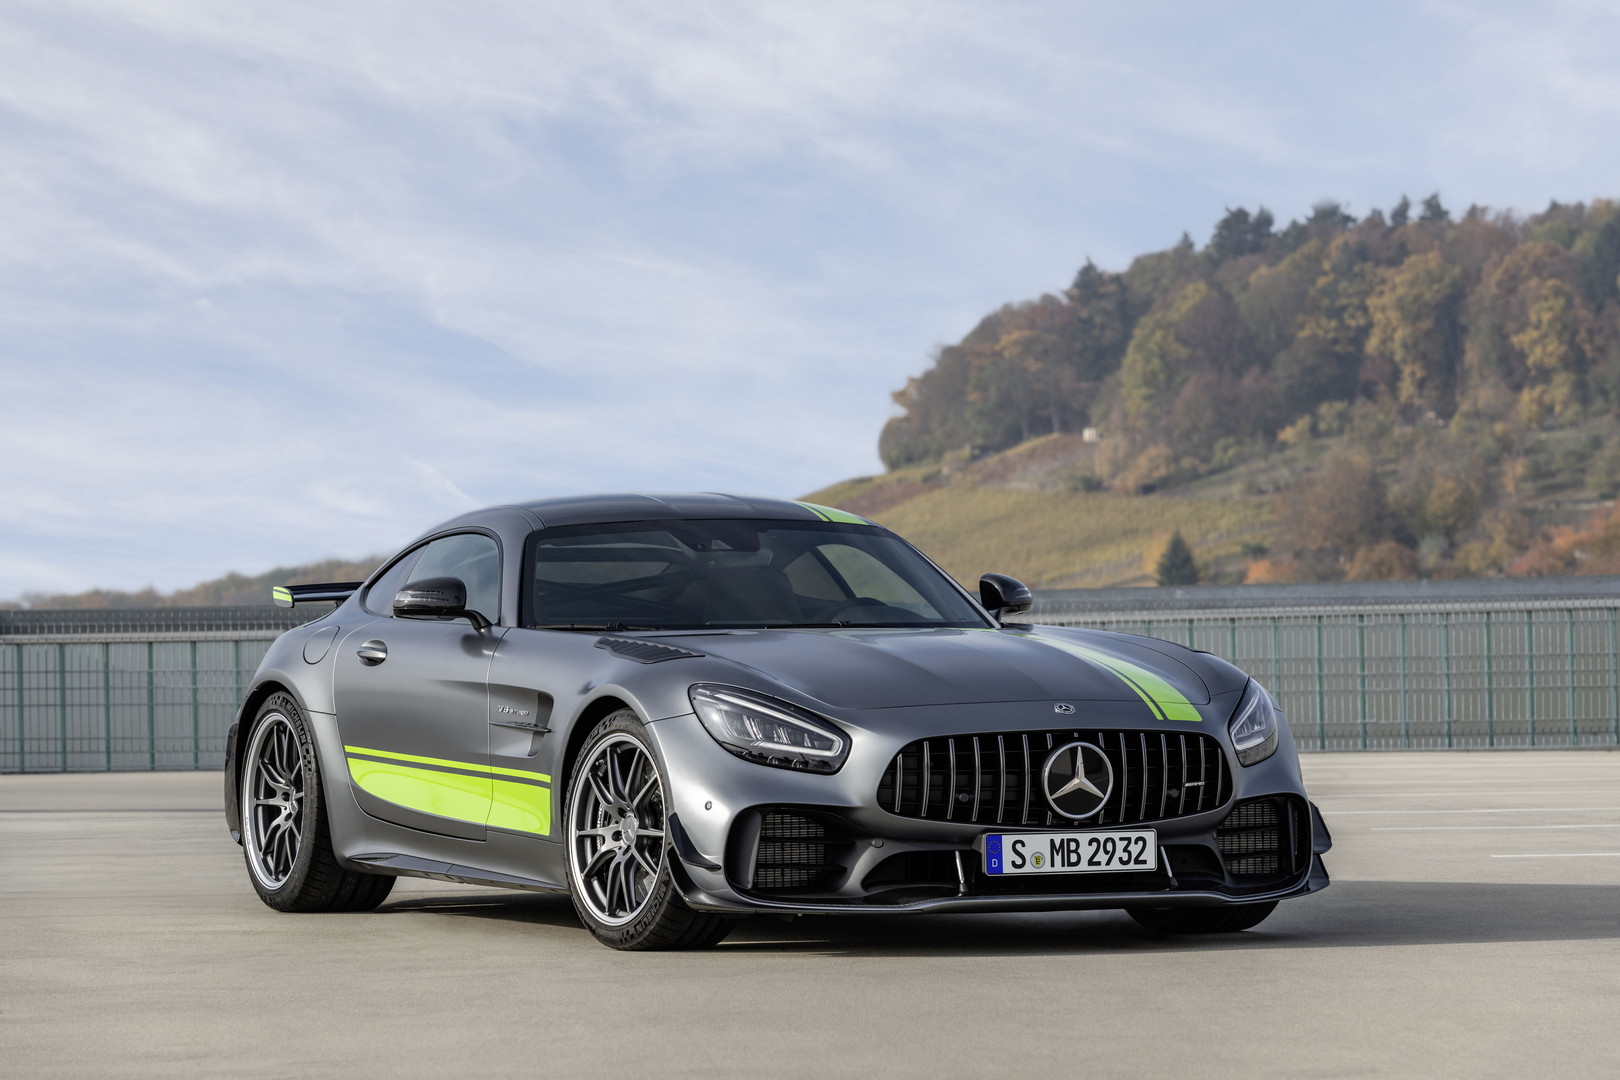 2019 mercedes amg gt r pro officially revealed gtspirit. Black Bedroom Furniture Sets. Home Design Ideas